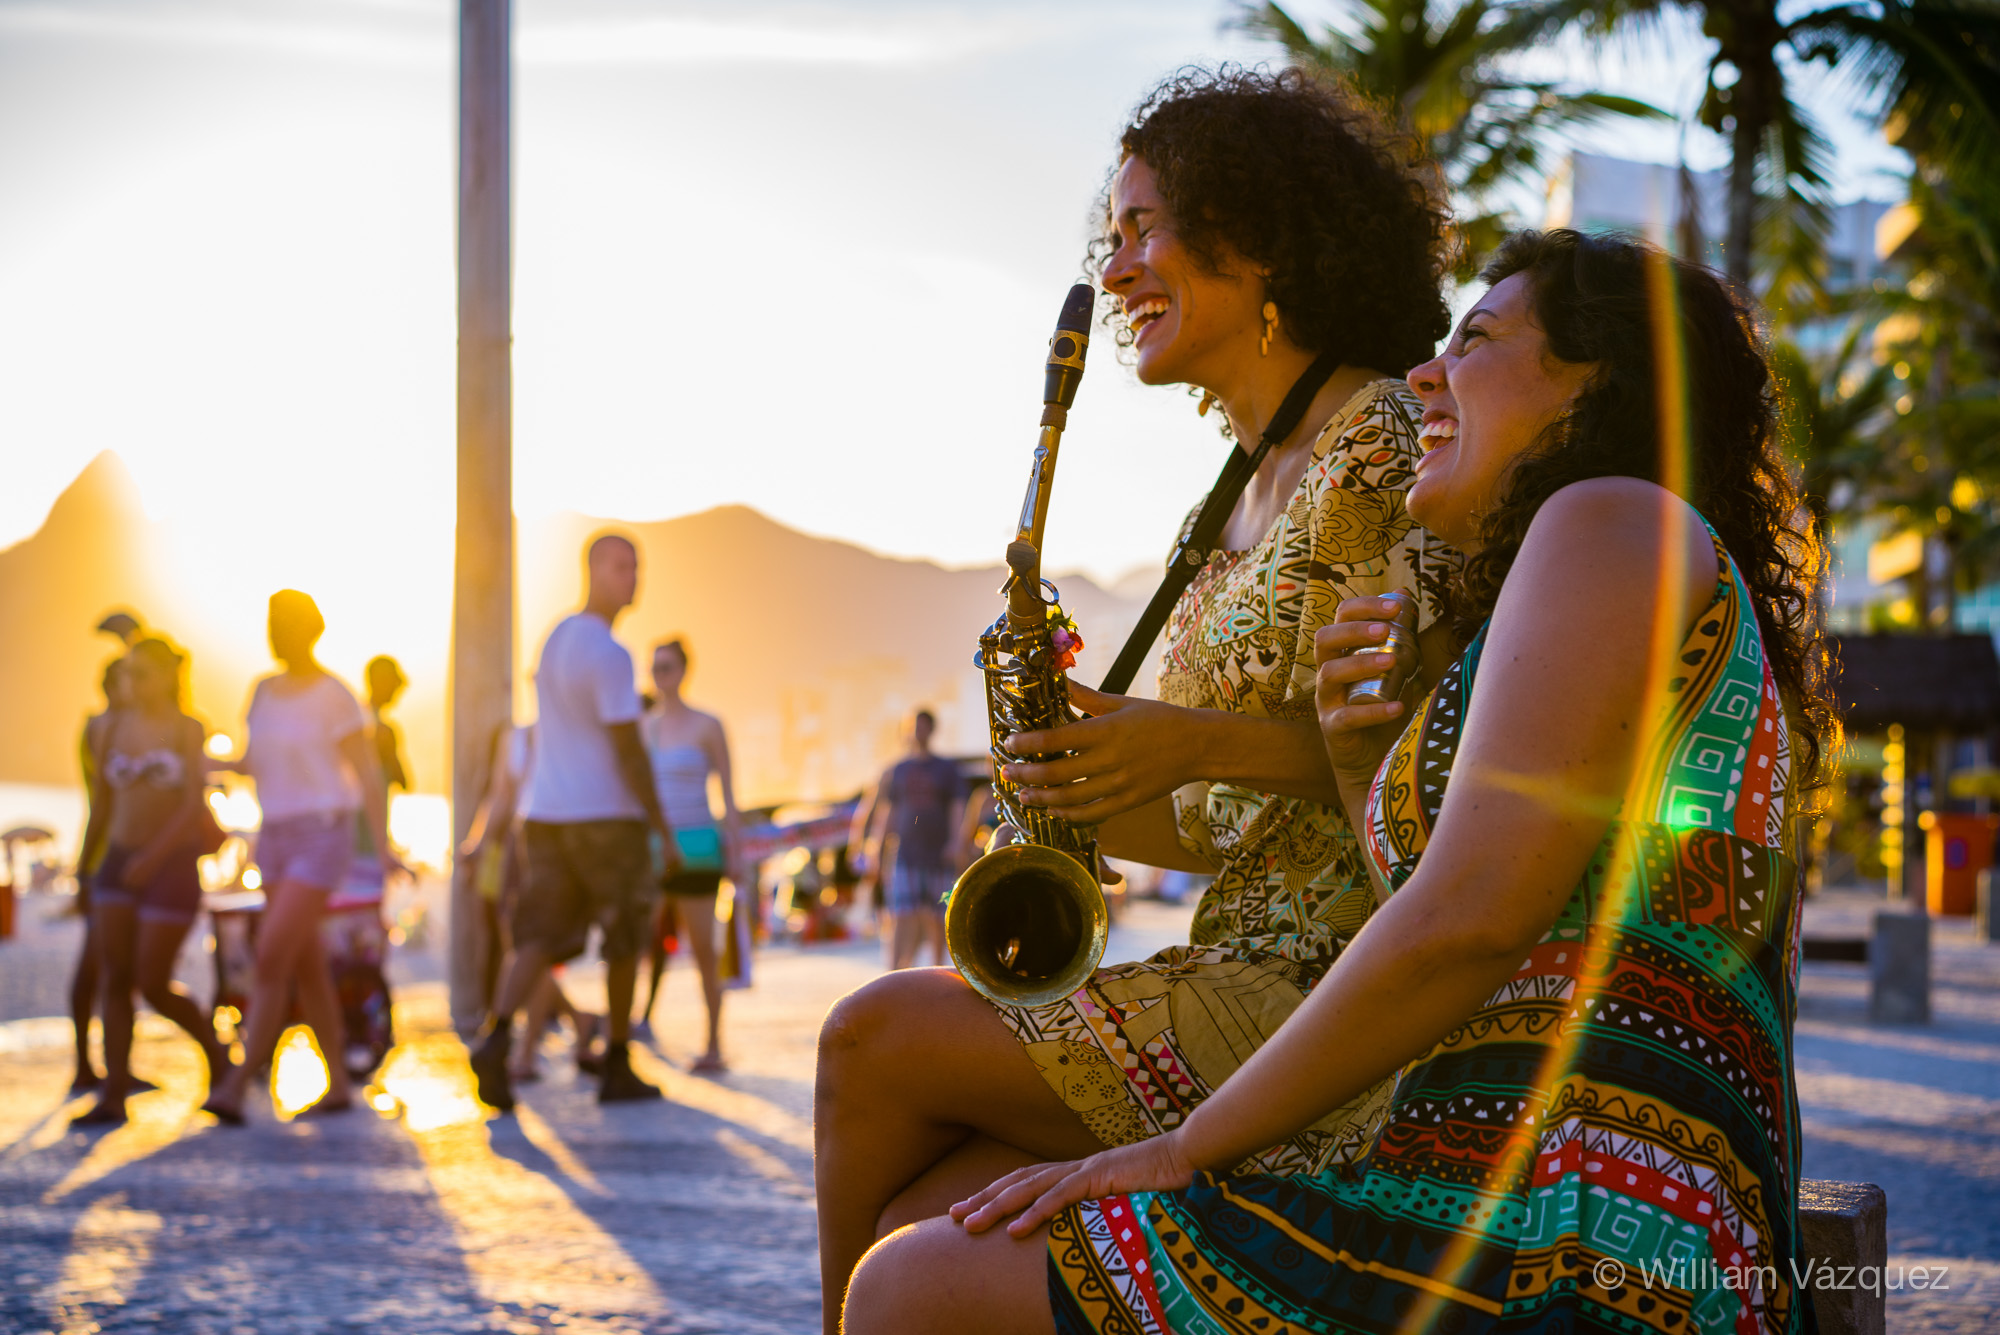 Musicians on Copacabana beach